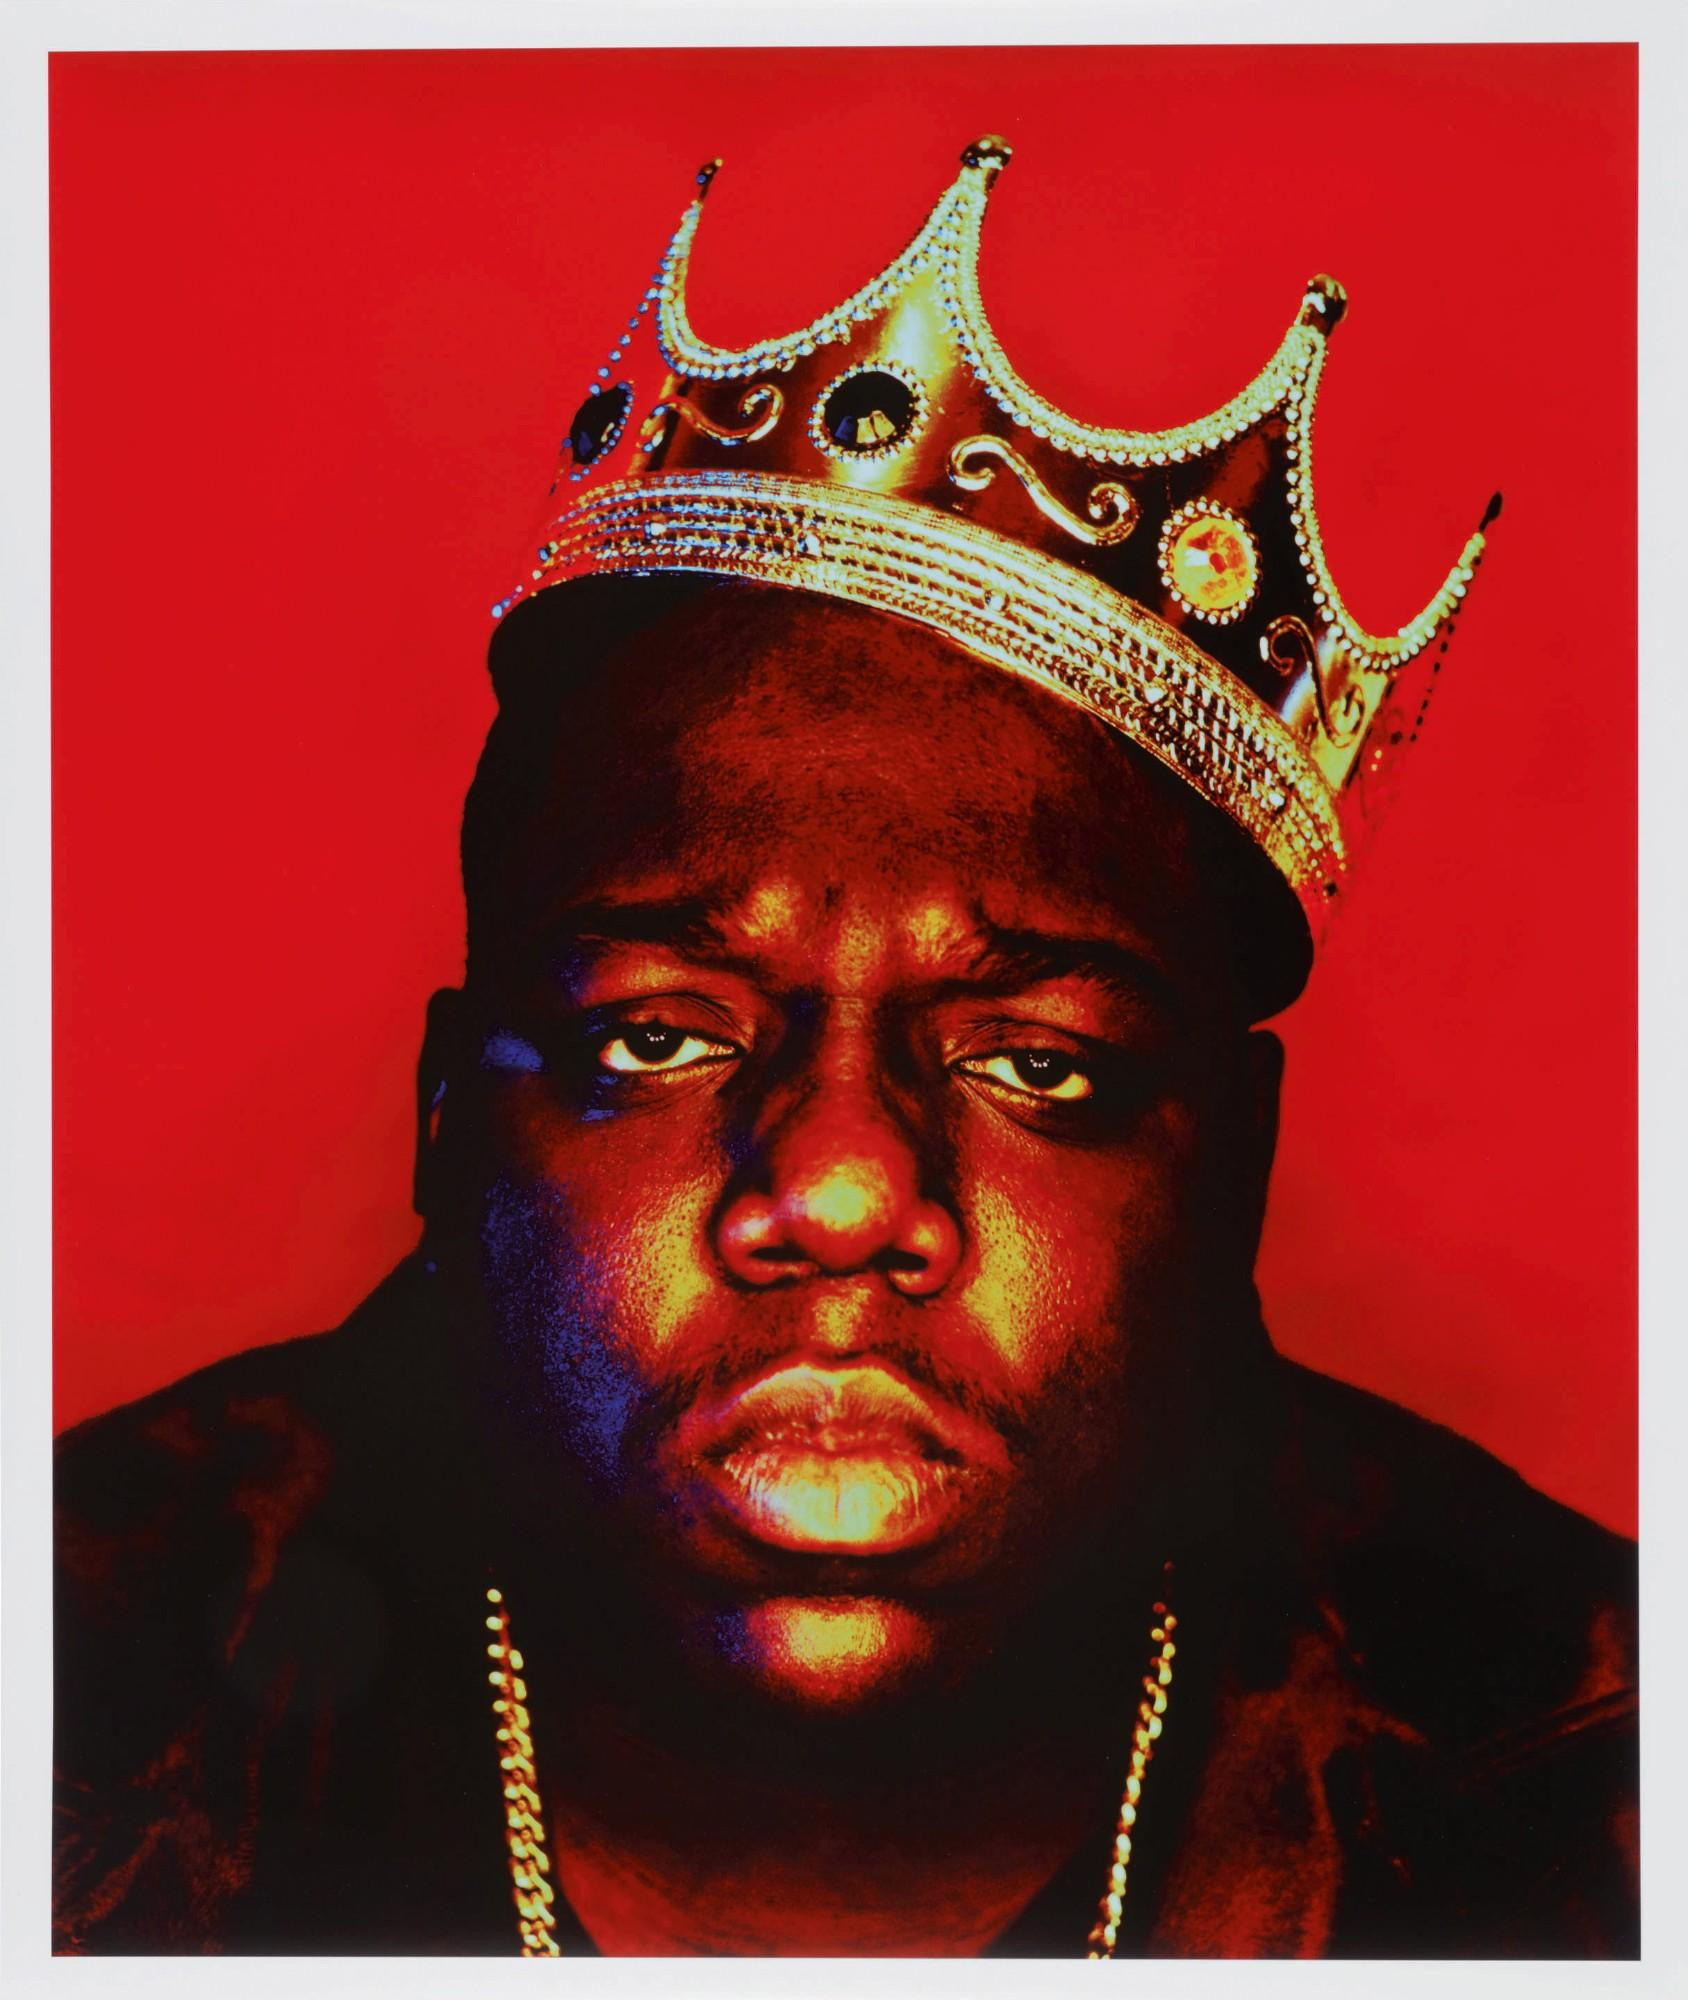 Legendary Biggie Smalls Crown Leads Sotheby S First Ever Hip Hop Auction Art Object Big bundle cute collection of beautiful princesses. legendary biggie smalls crown leads